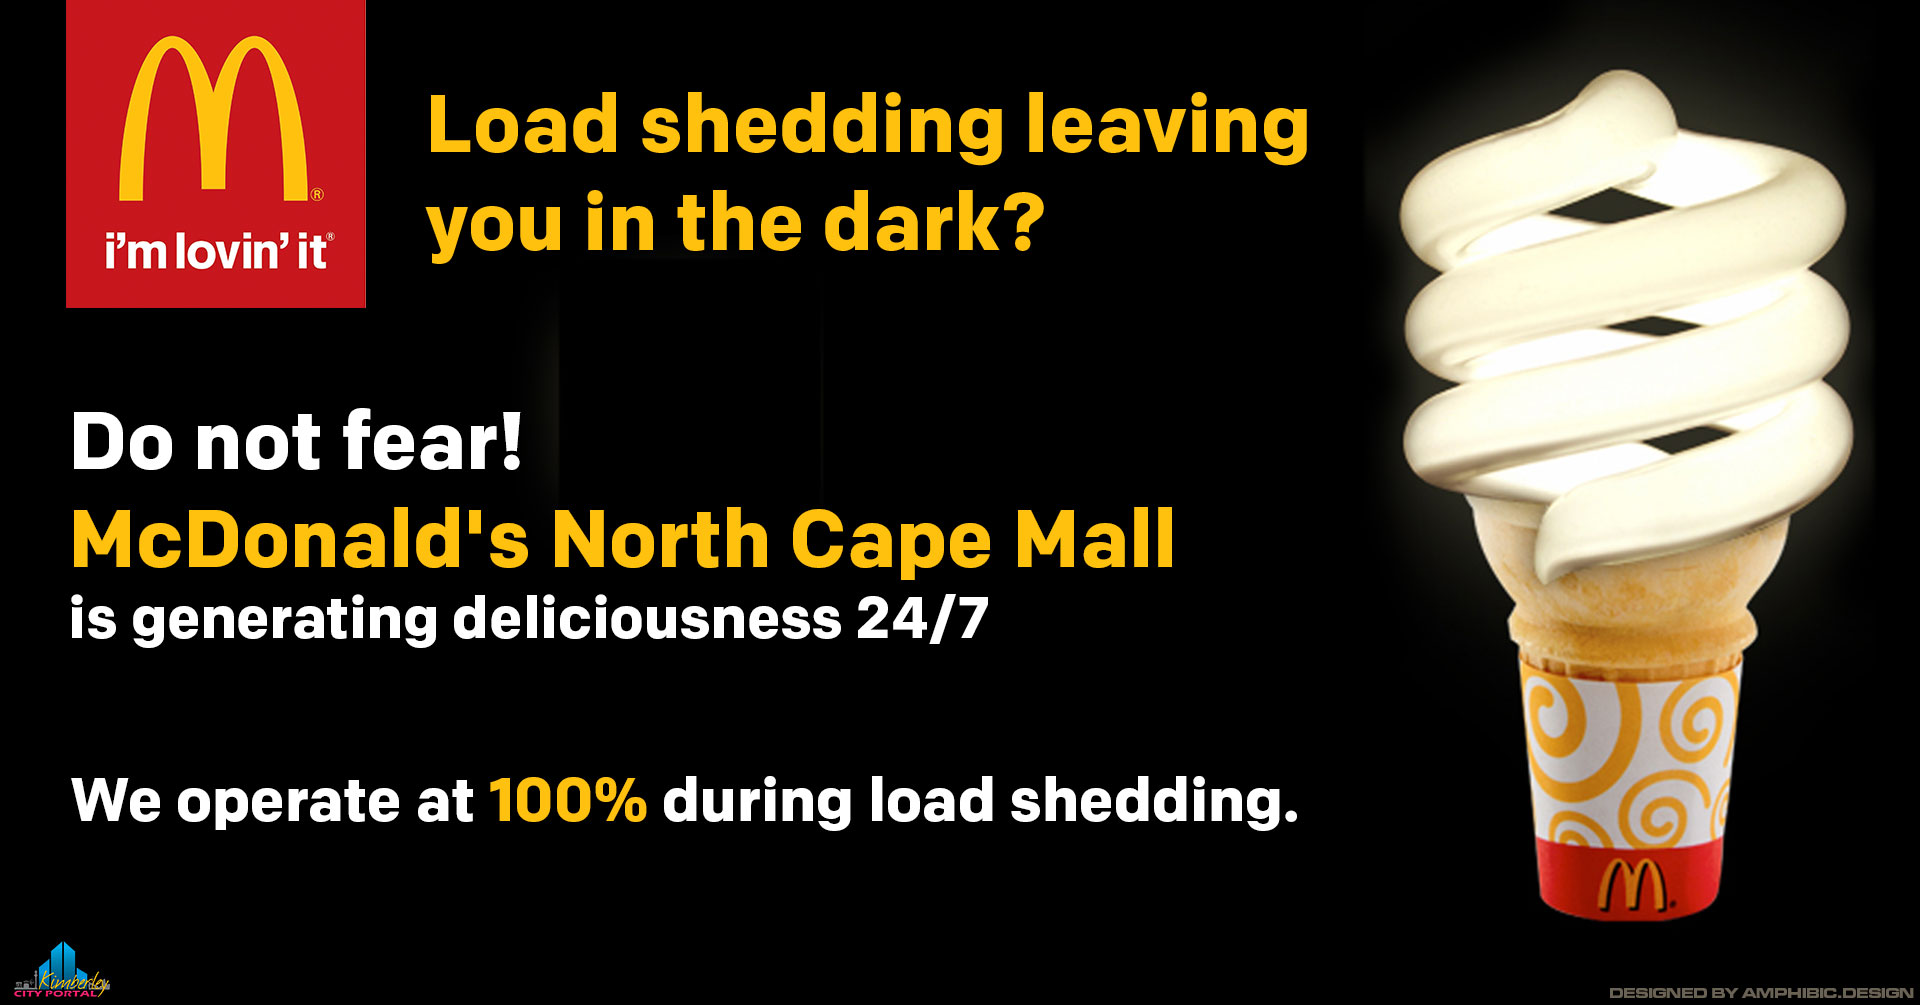 McDonalds at the North Cape Mall in Kimberley operates 100% During Loadshedding